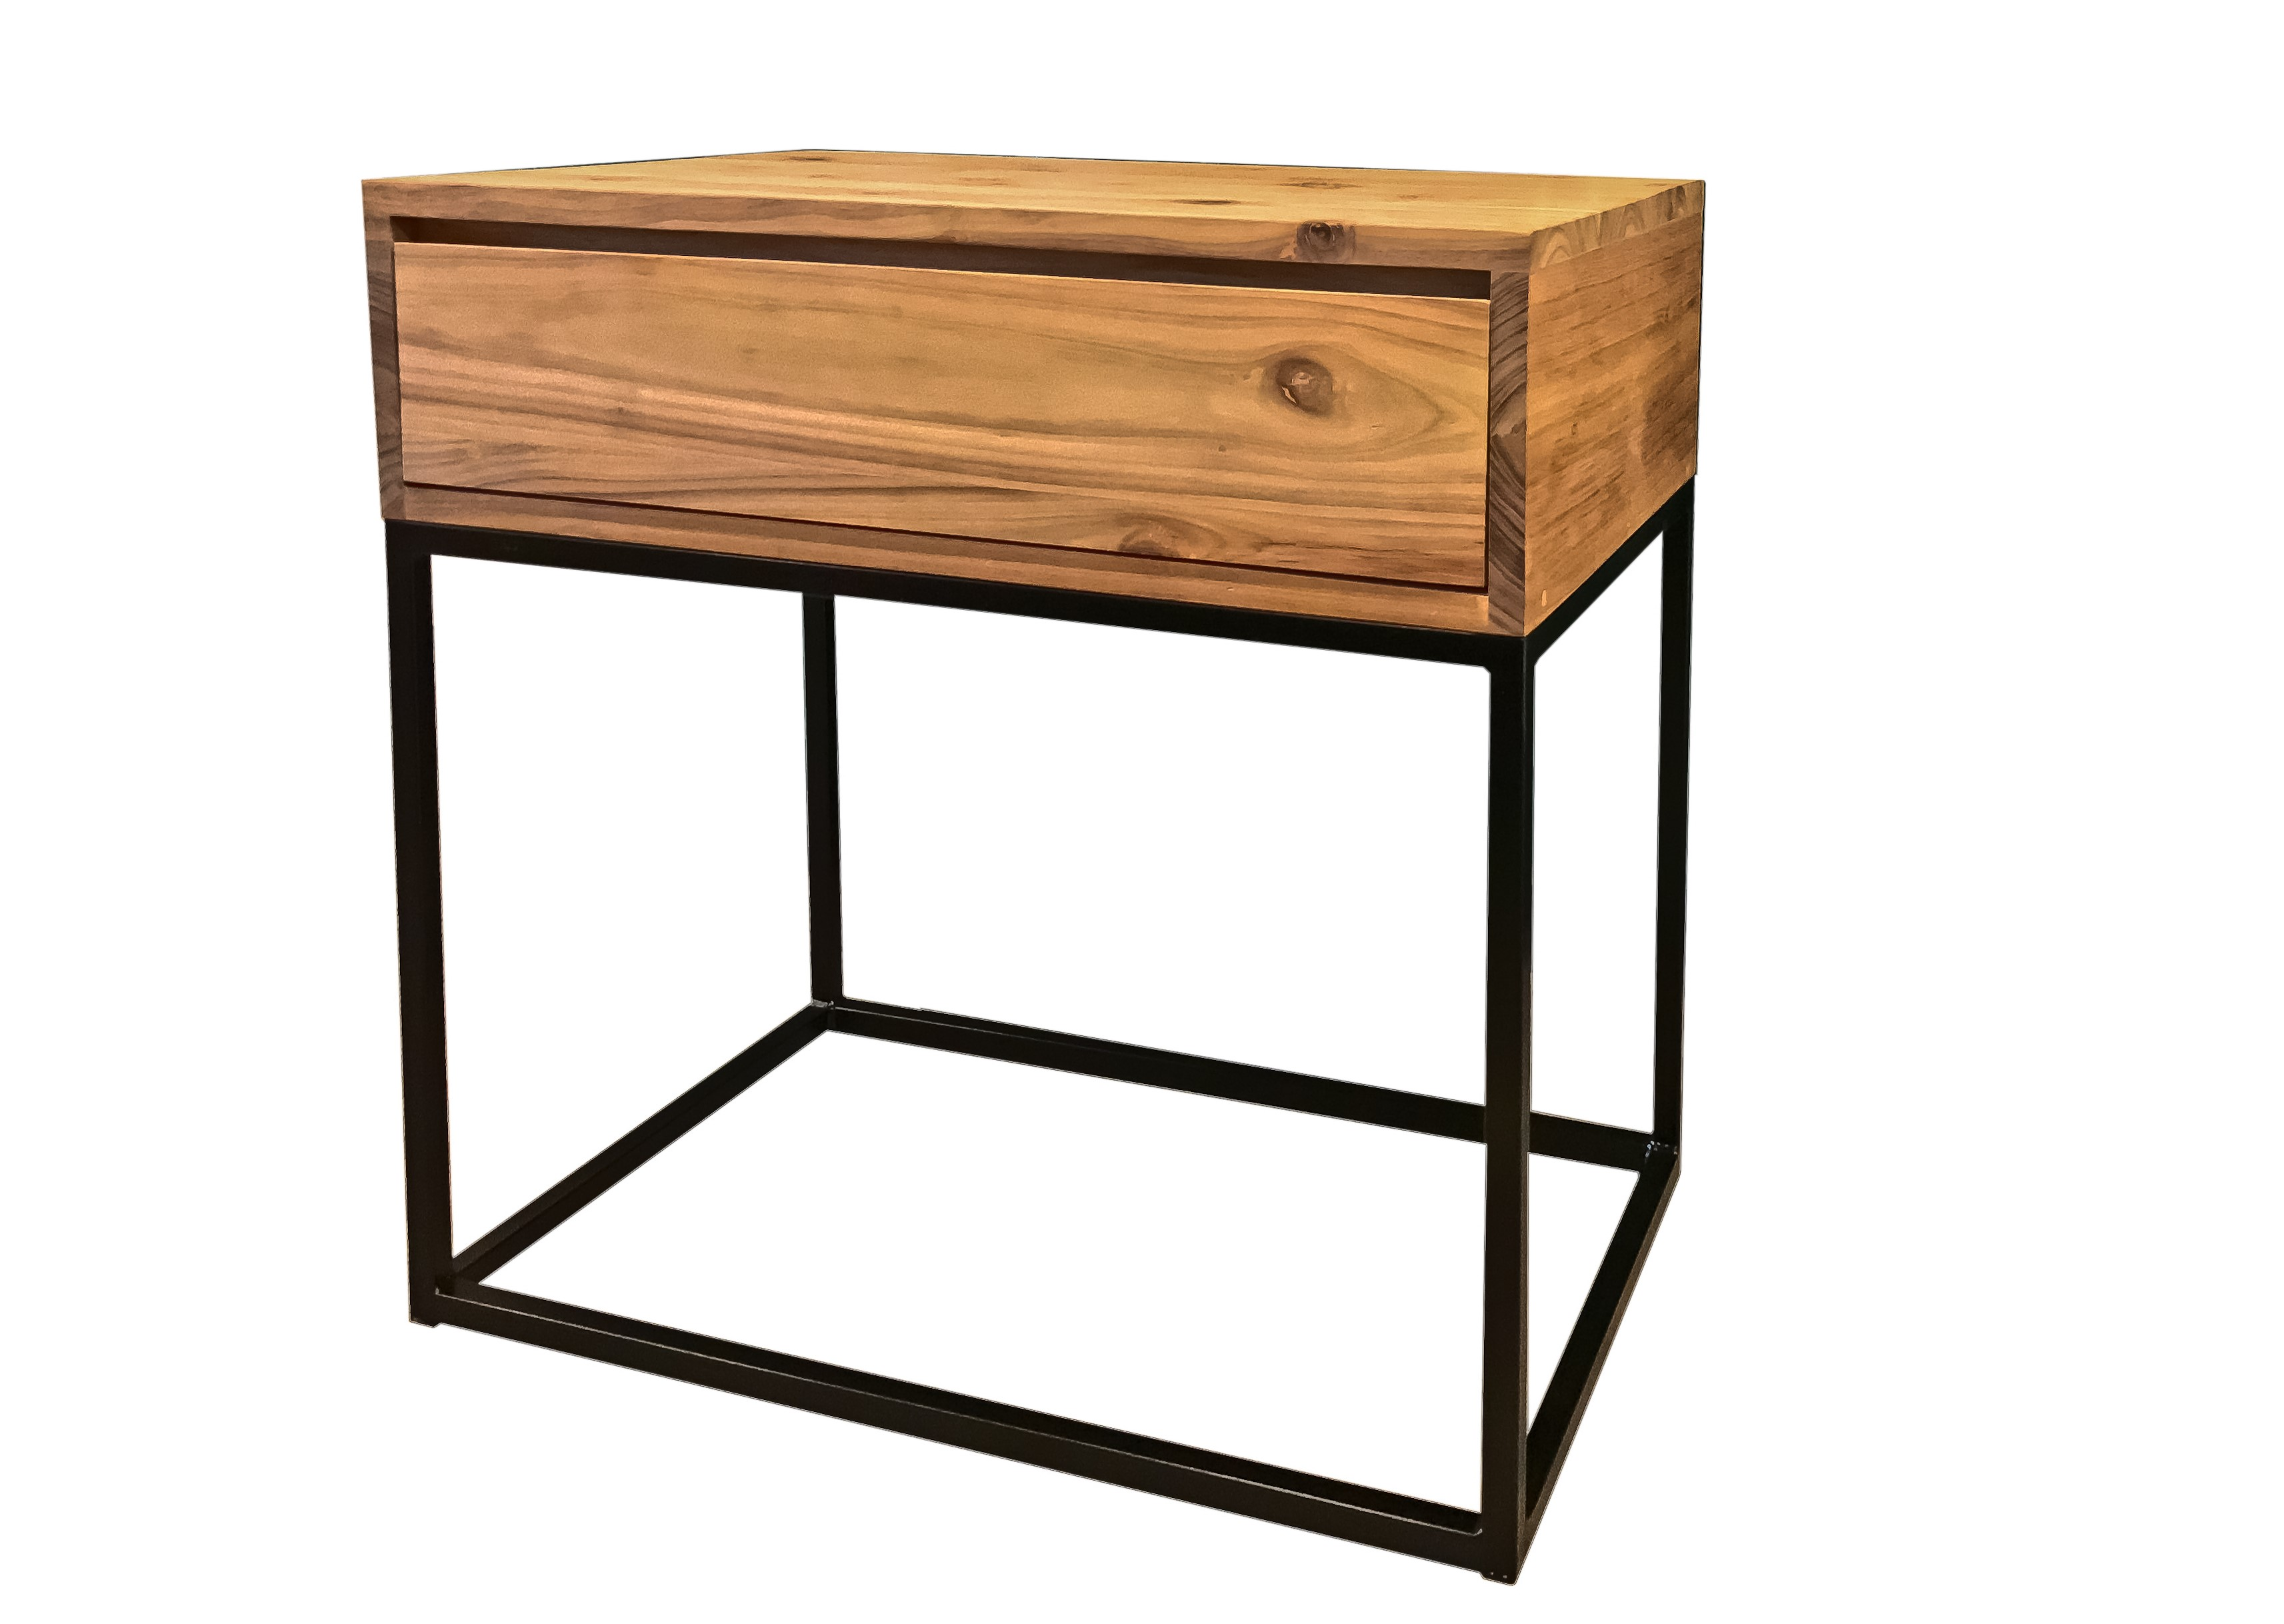 file drawer desk files for bars cabinets lock and barsdesigning hanger vertical resistant dividers rails cabinet filing lateral dimensions many hanging colors single folder doors inserts bar divider hon tracks horizontal in furniture hang wood drawers fire with rods metal